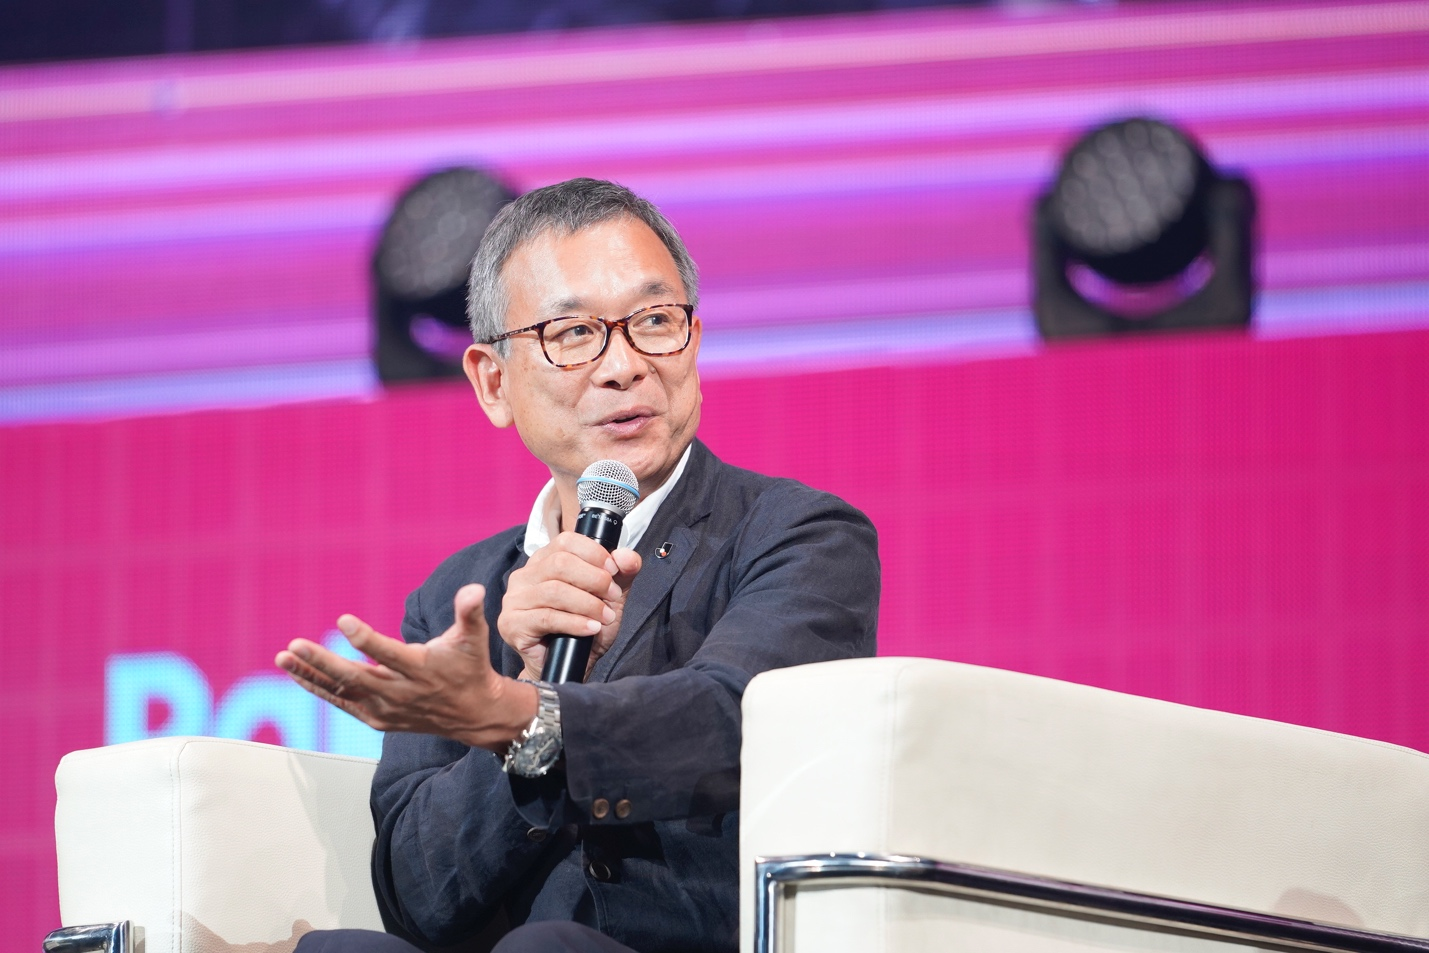 J.League chairman Murai on the future of soccer in Japan, the role of sports in promoting healthy lifestyles & his plans to globalize the league's audience.